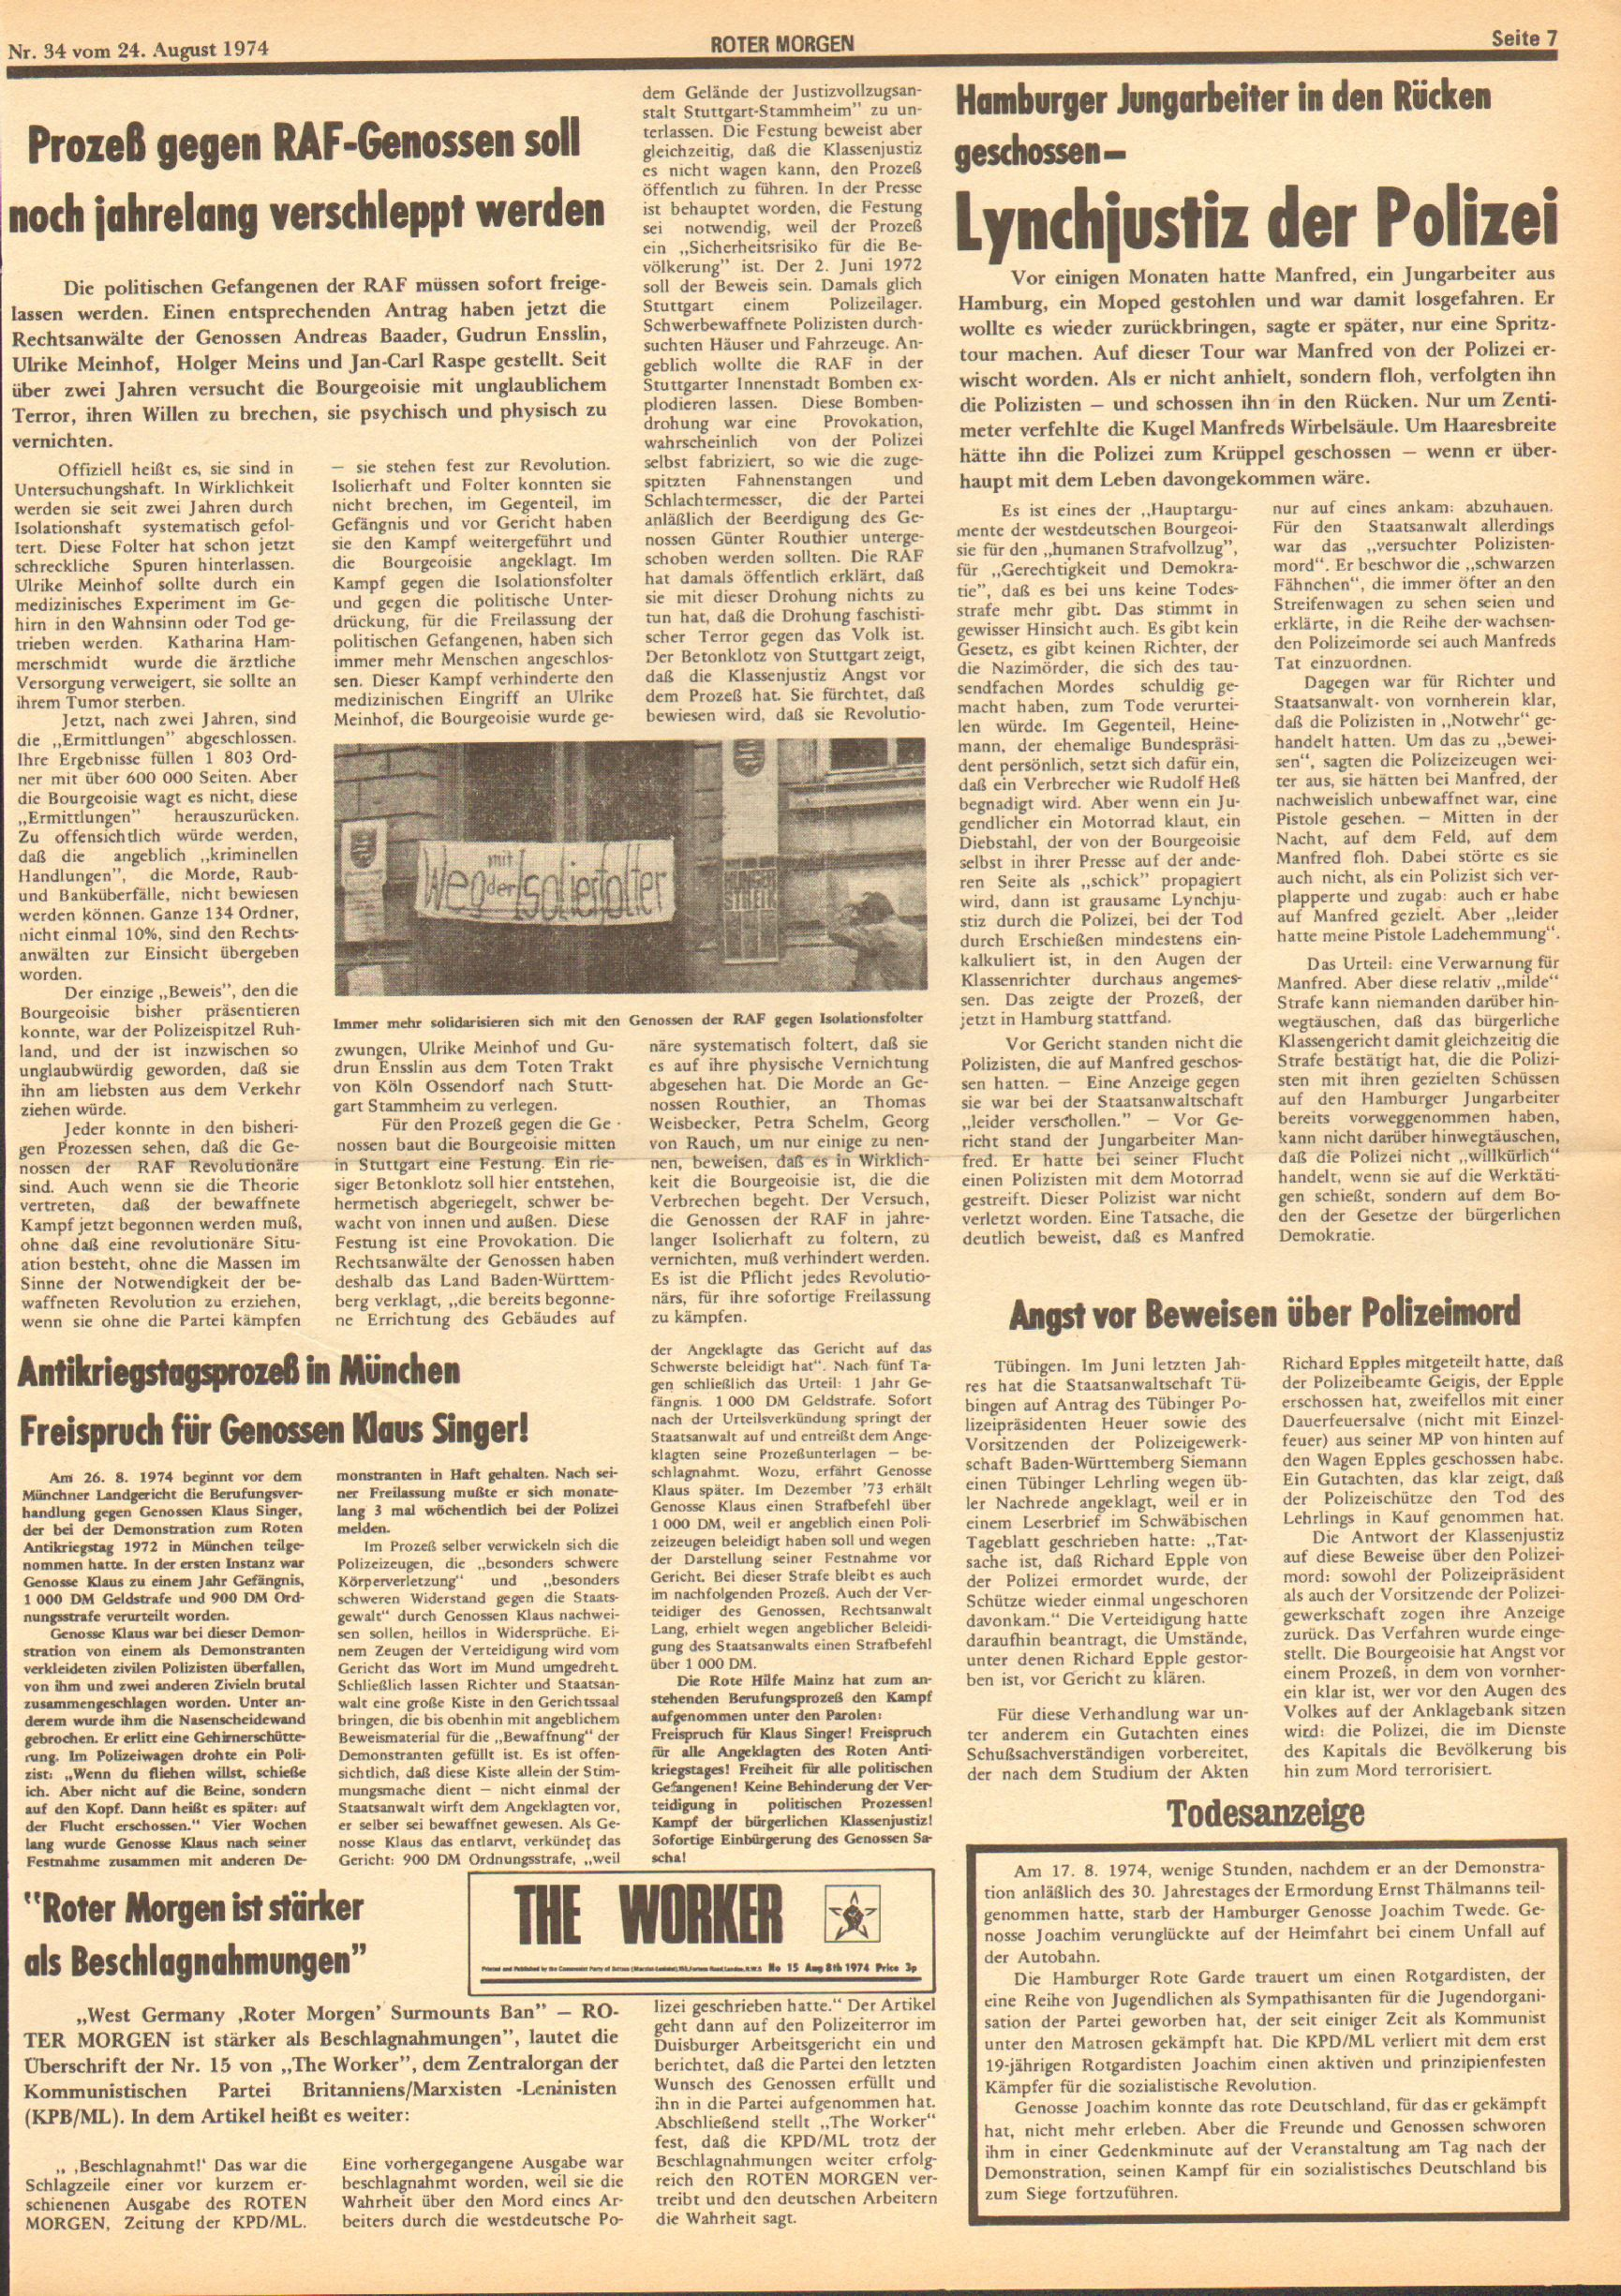 Roter Morgen, 8. Jg., 24. August 1974, Nr. 34, Seite 7